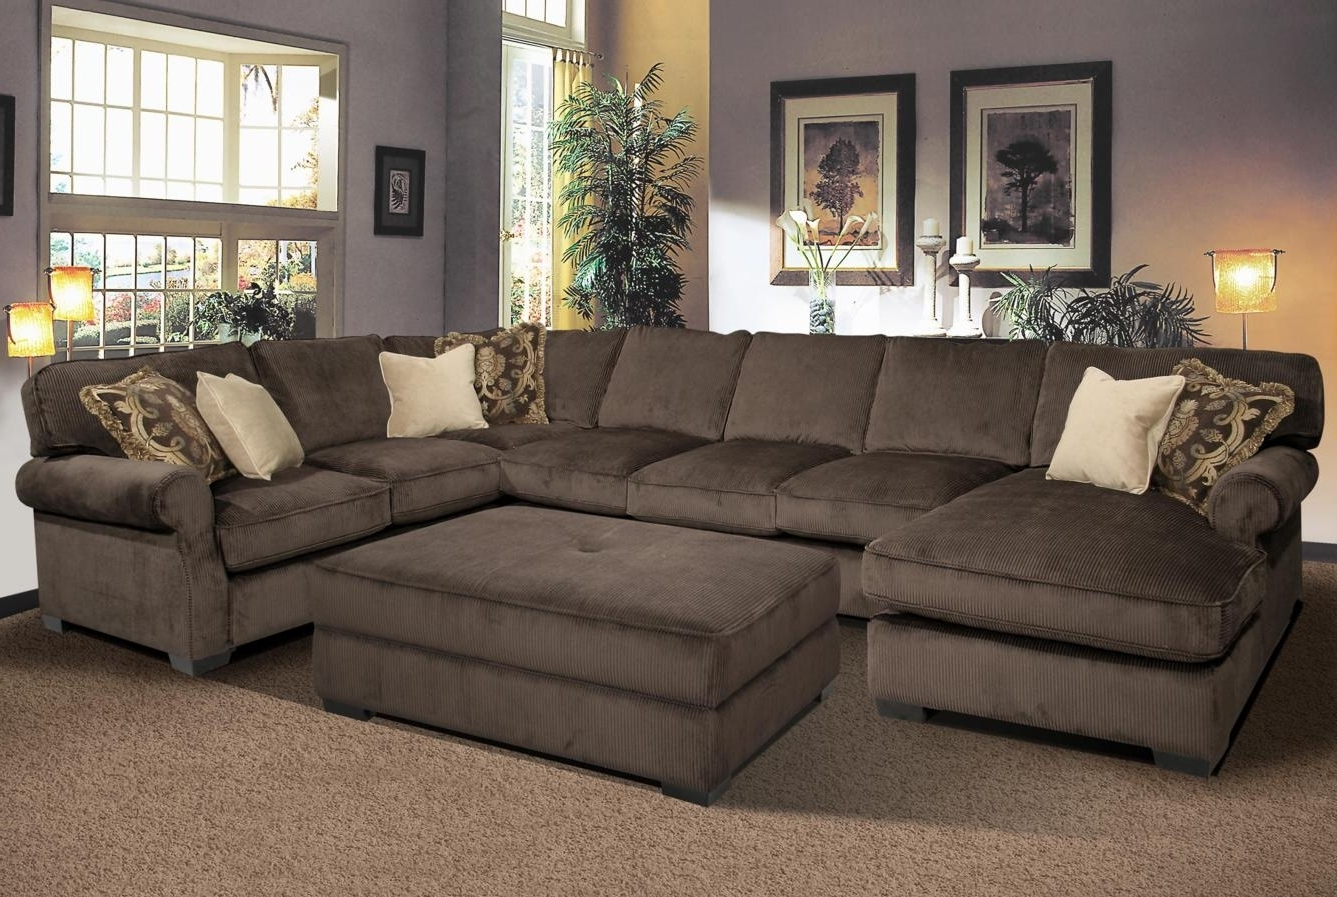 Inexpensive Sectional Sofas For Small Spaces For Well Liked Stylish Inexpensive Sectional Sofas For Small Spaces (View 7 of 20)